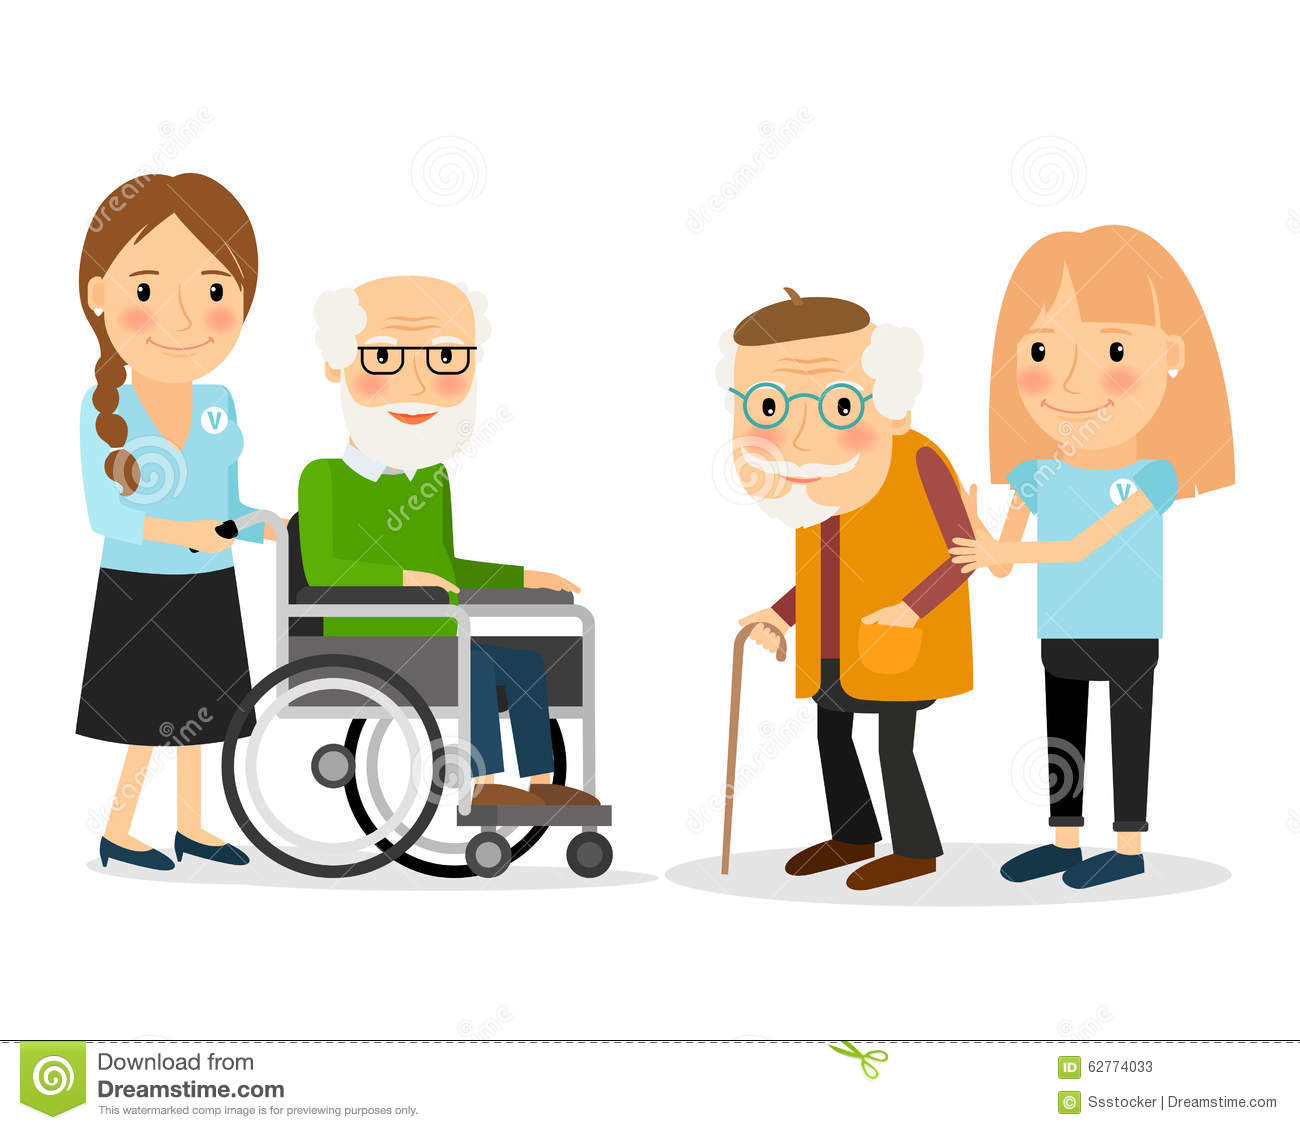 seniors helping seniors clipart - Clipground